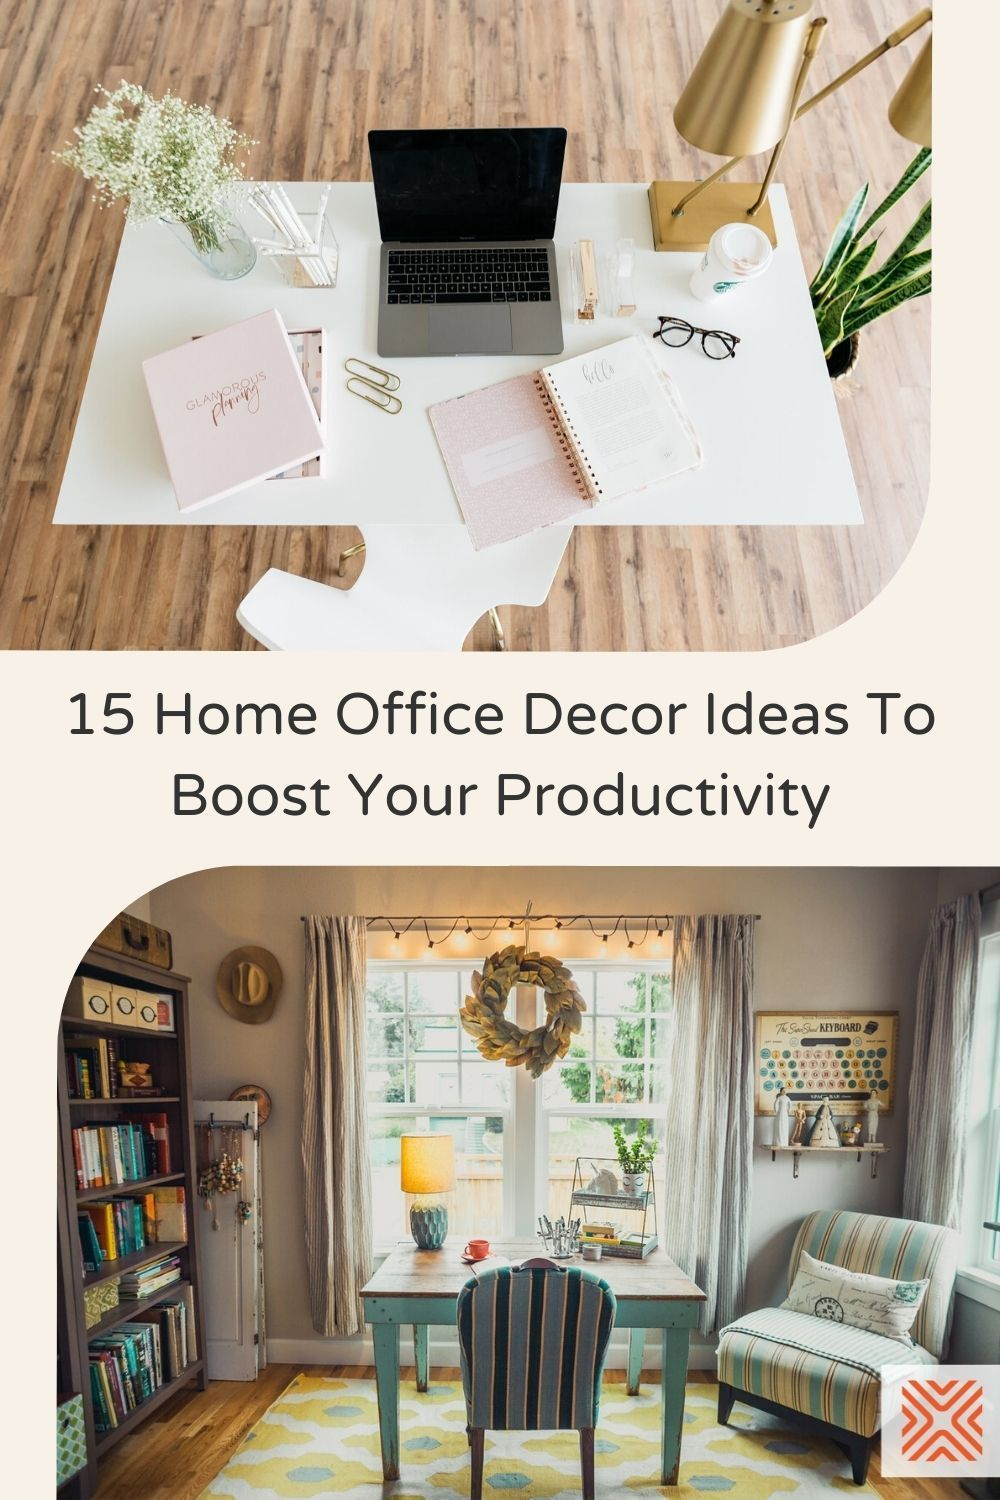 Thinking about setting up a home office? We got 15 gorgeous home office decor ideas that will inspire your creativity and also help organize your work. Check them out, and start decorating your home office.